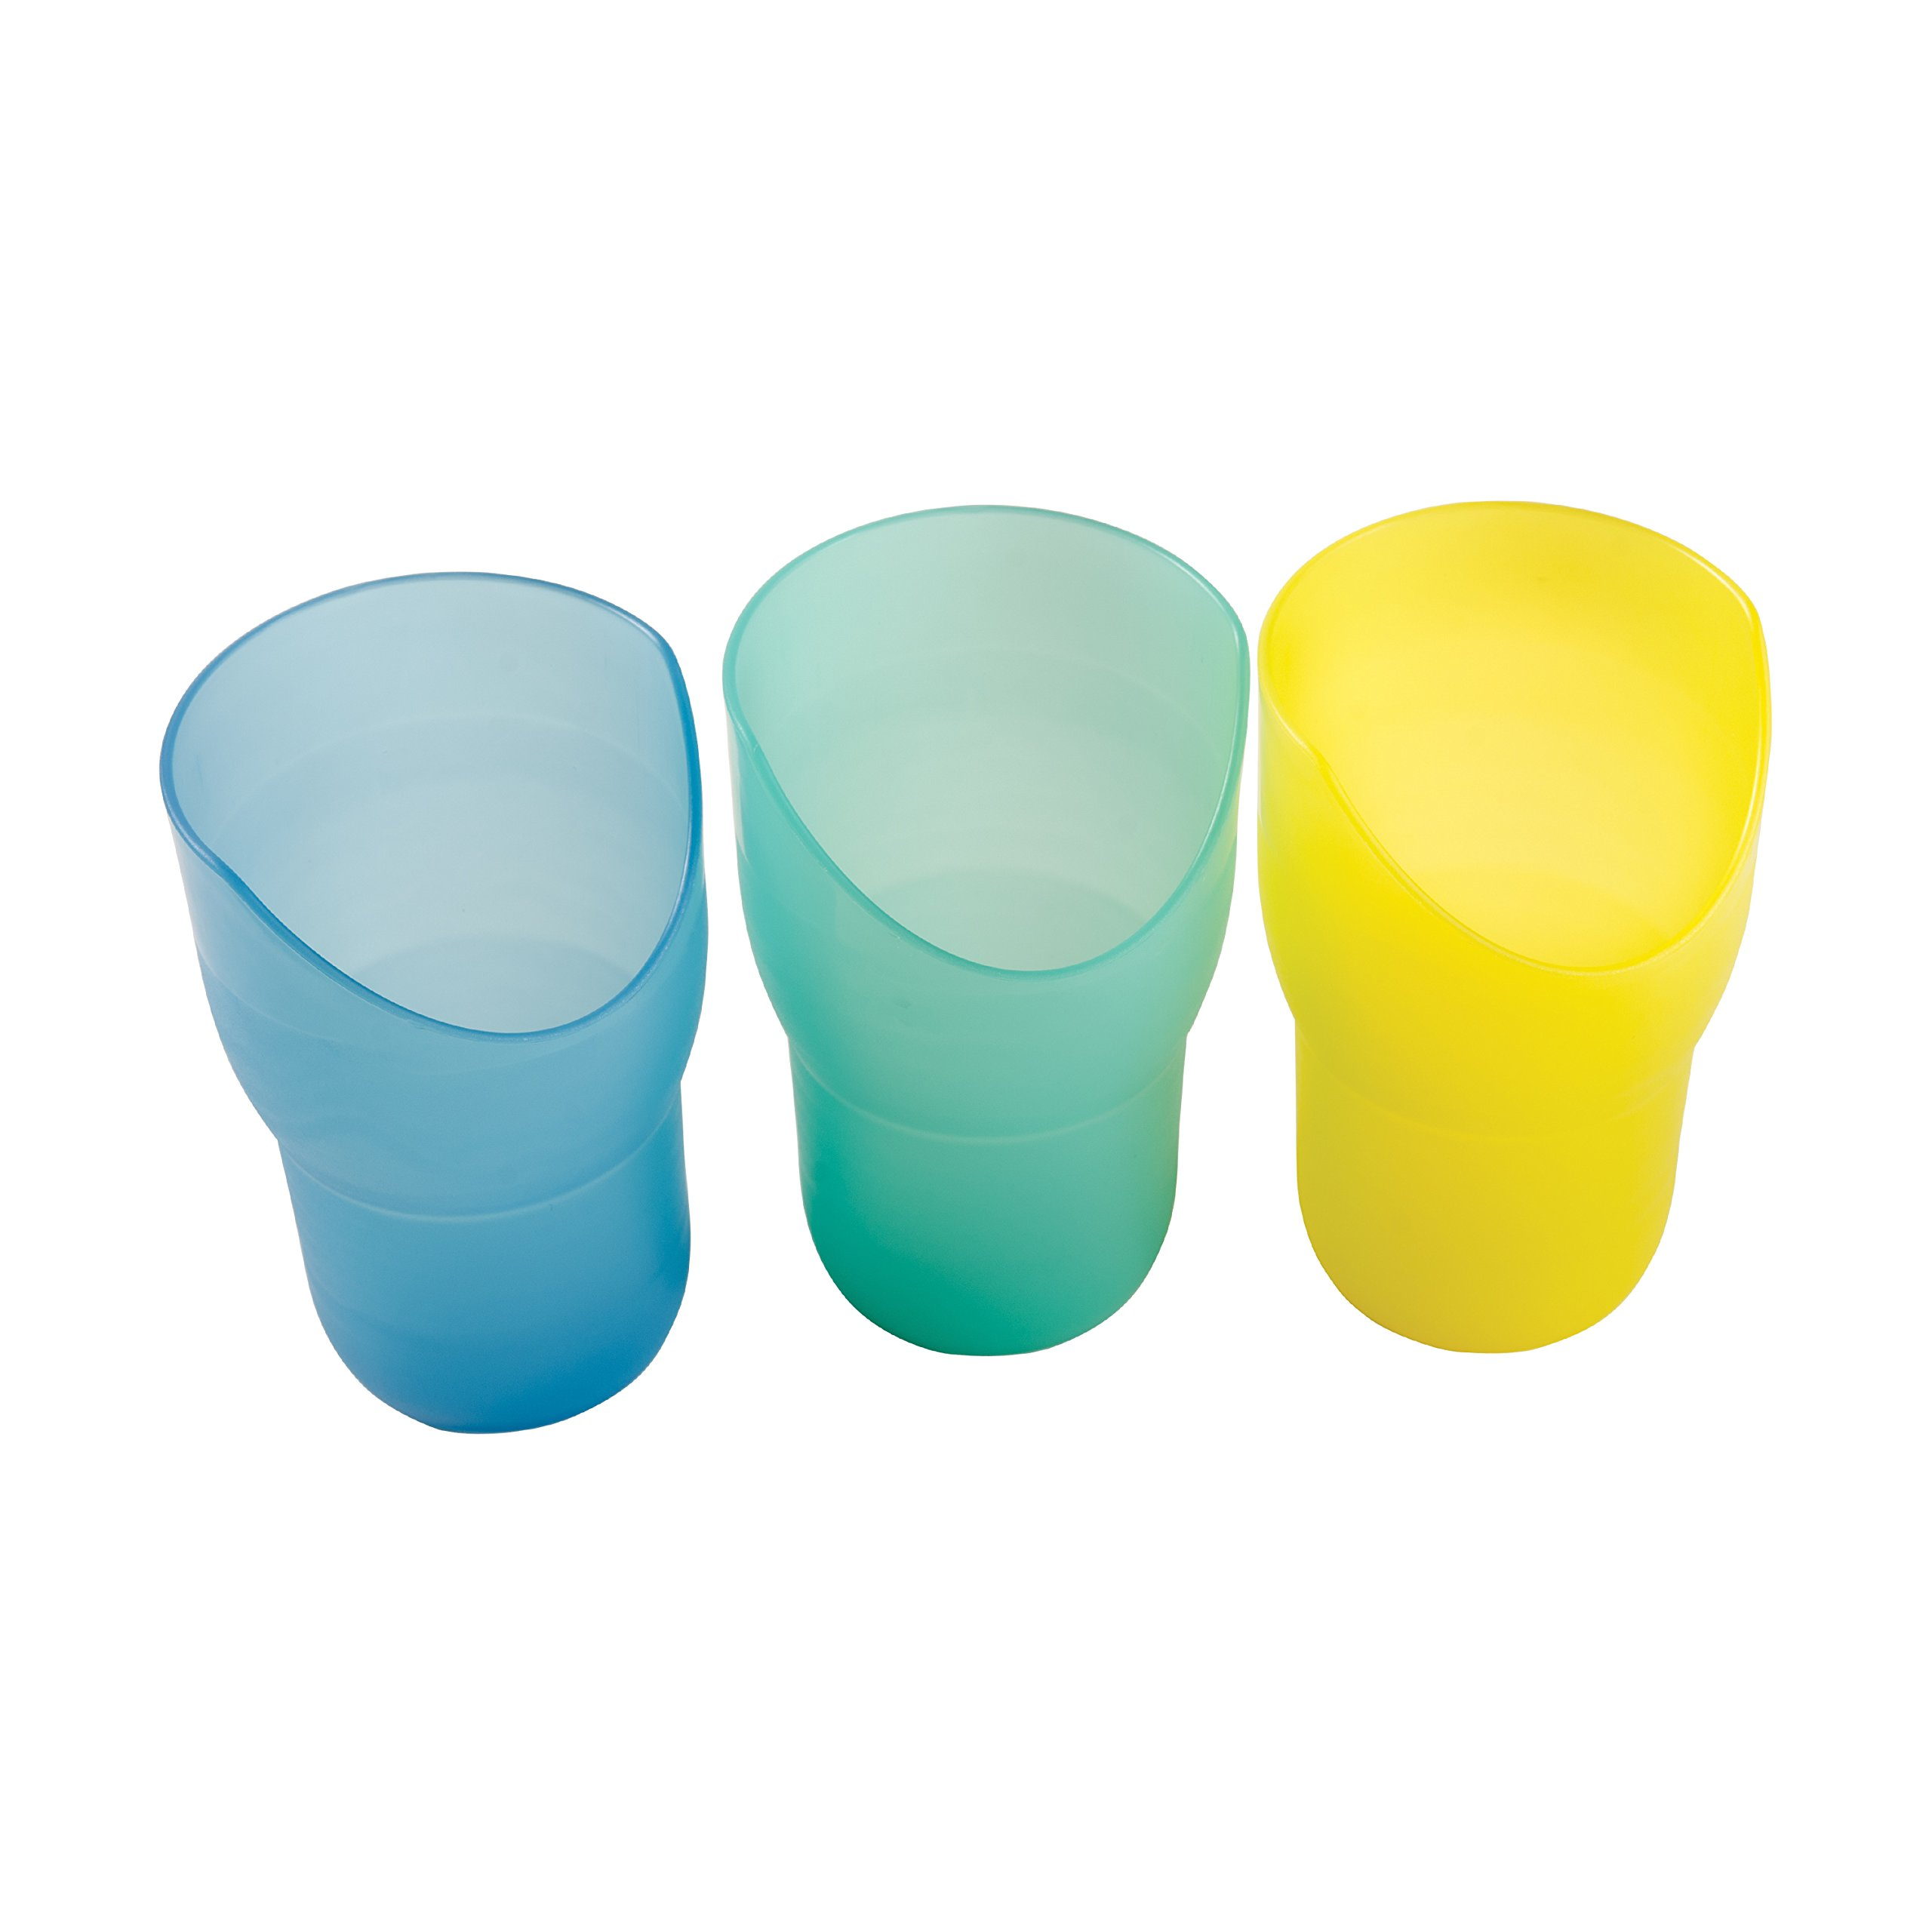 HealthSmart Nosey Drinking Cups Combo Set, 8 ounces, Set of 3, Yellow, Green and Blue